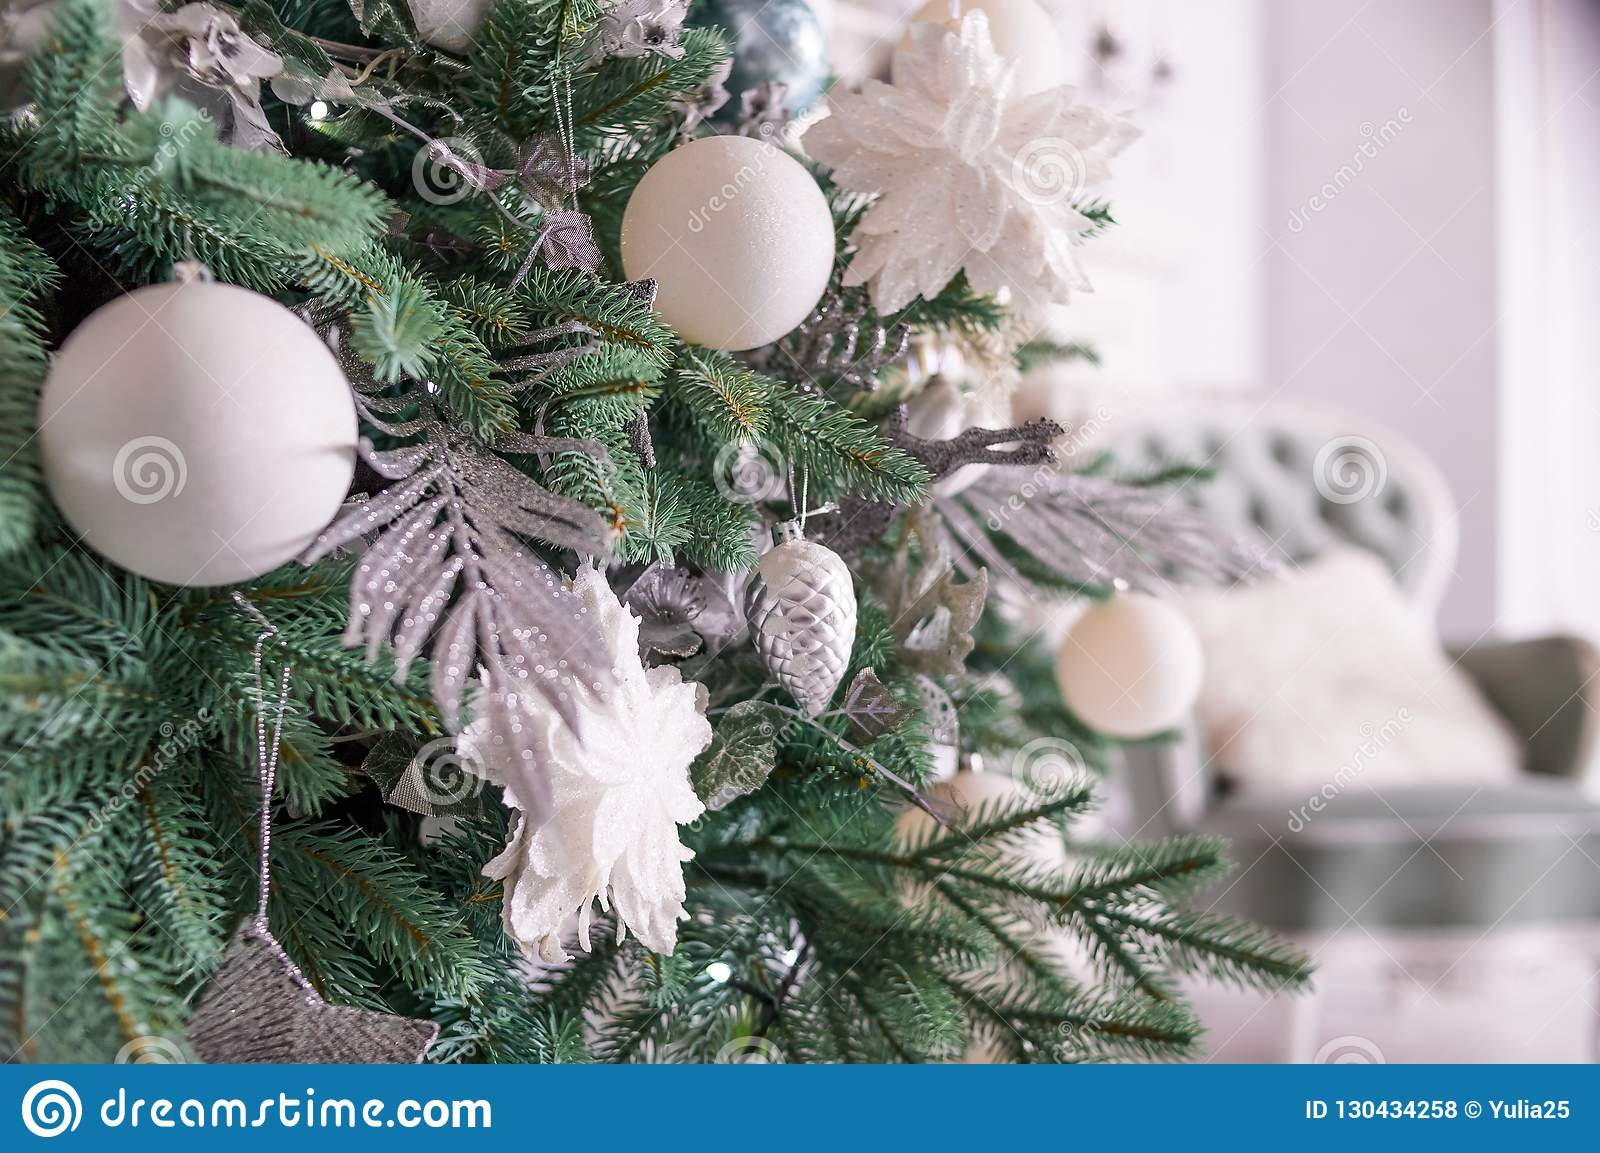 Expensive Christmas Ornaments.Silver Christmas Ornaments Hanging On Fir Tree Section Of A